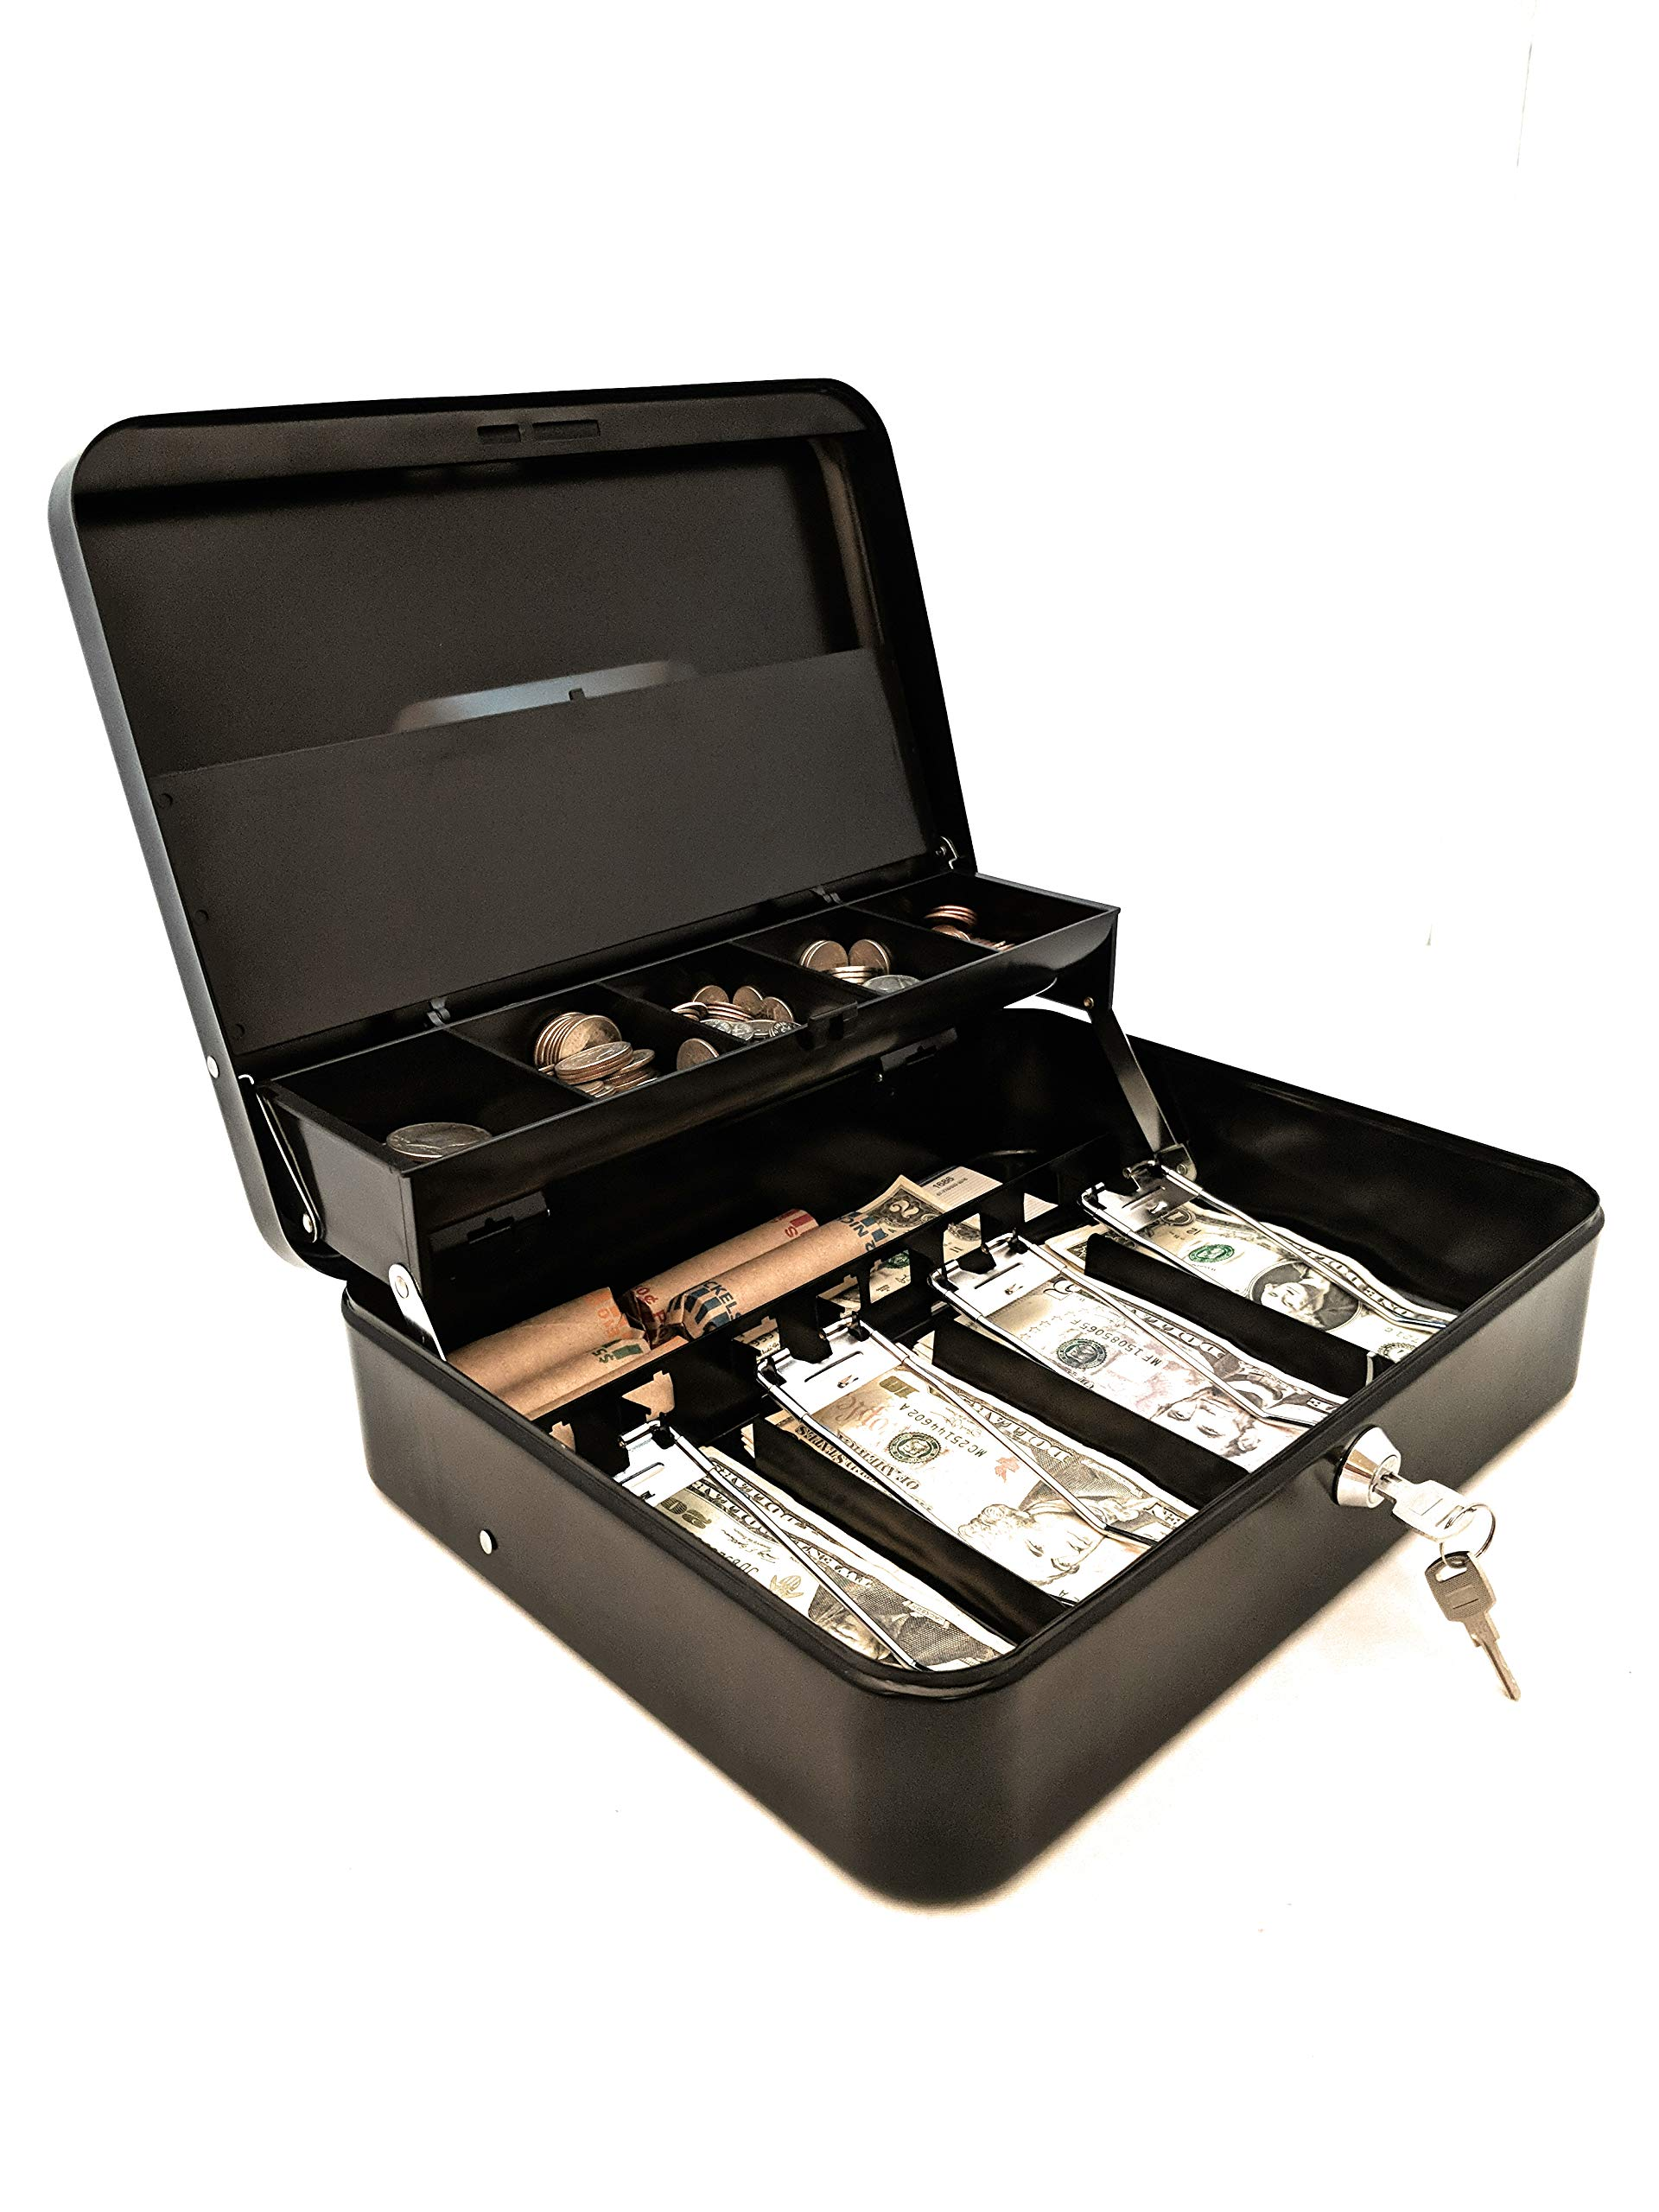 Cash Box   Portable Money Box   Petty Cash   Keyed   Coin Tray with Lid   Extra Storage for Rolled Coins, Checks and Other Valuables